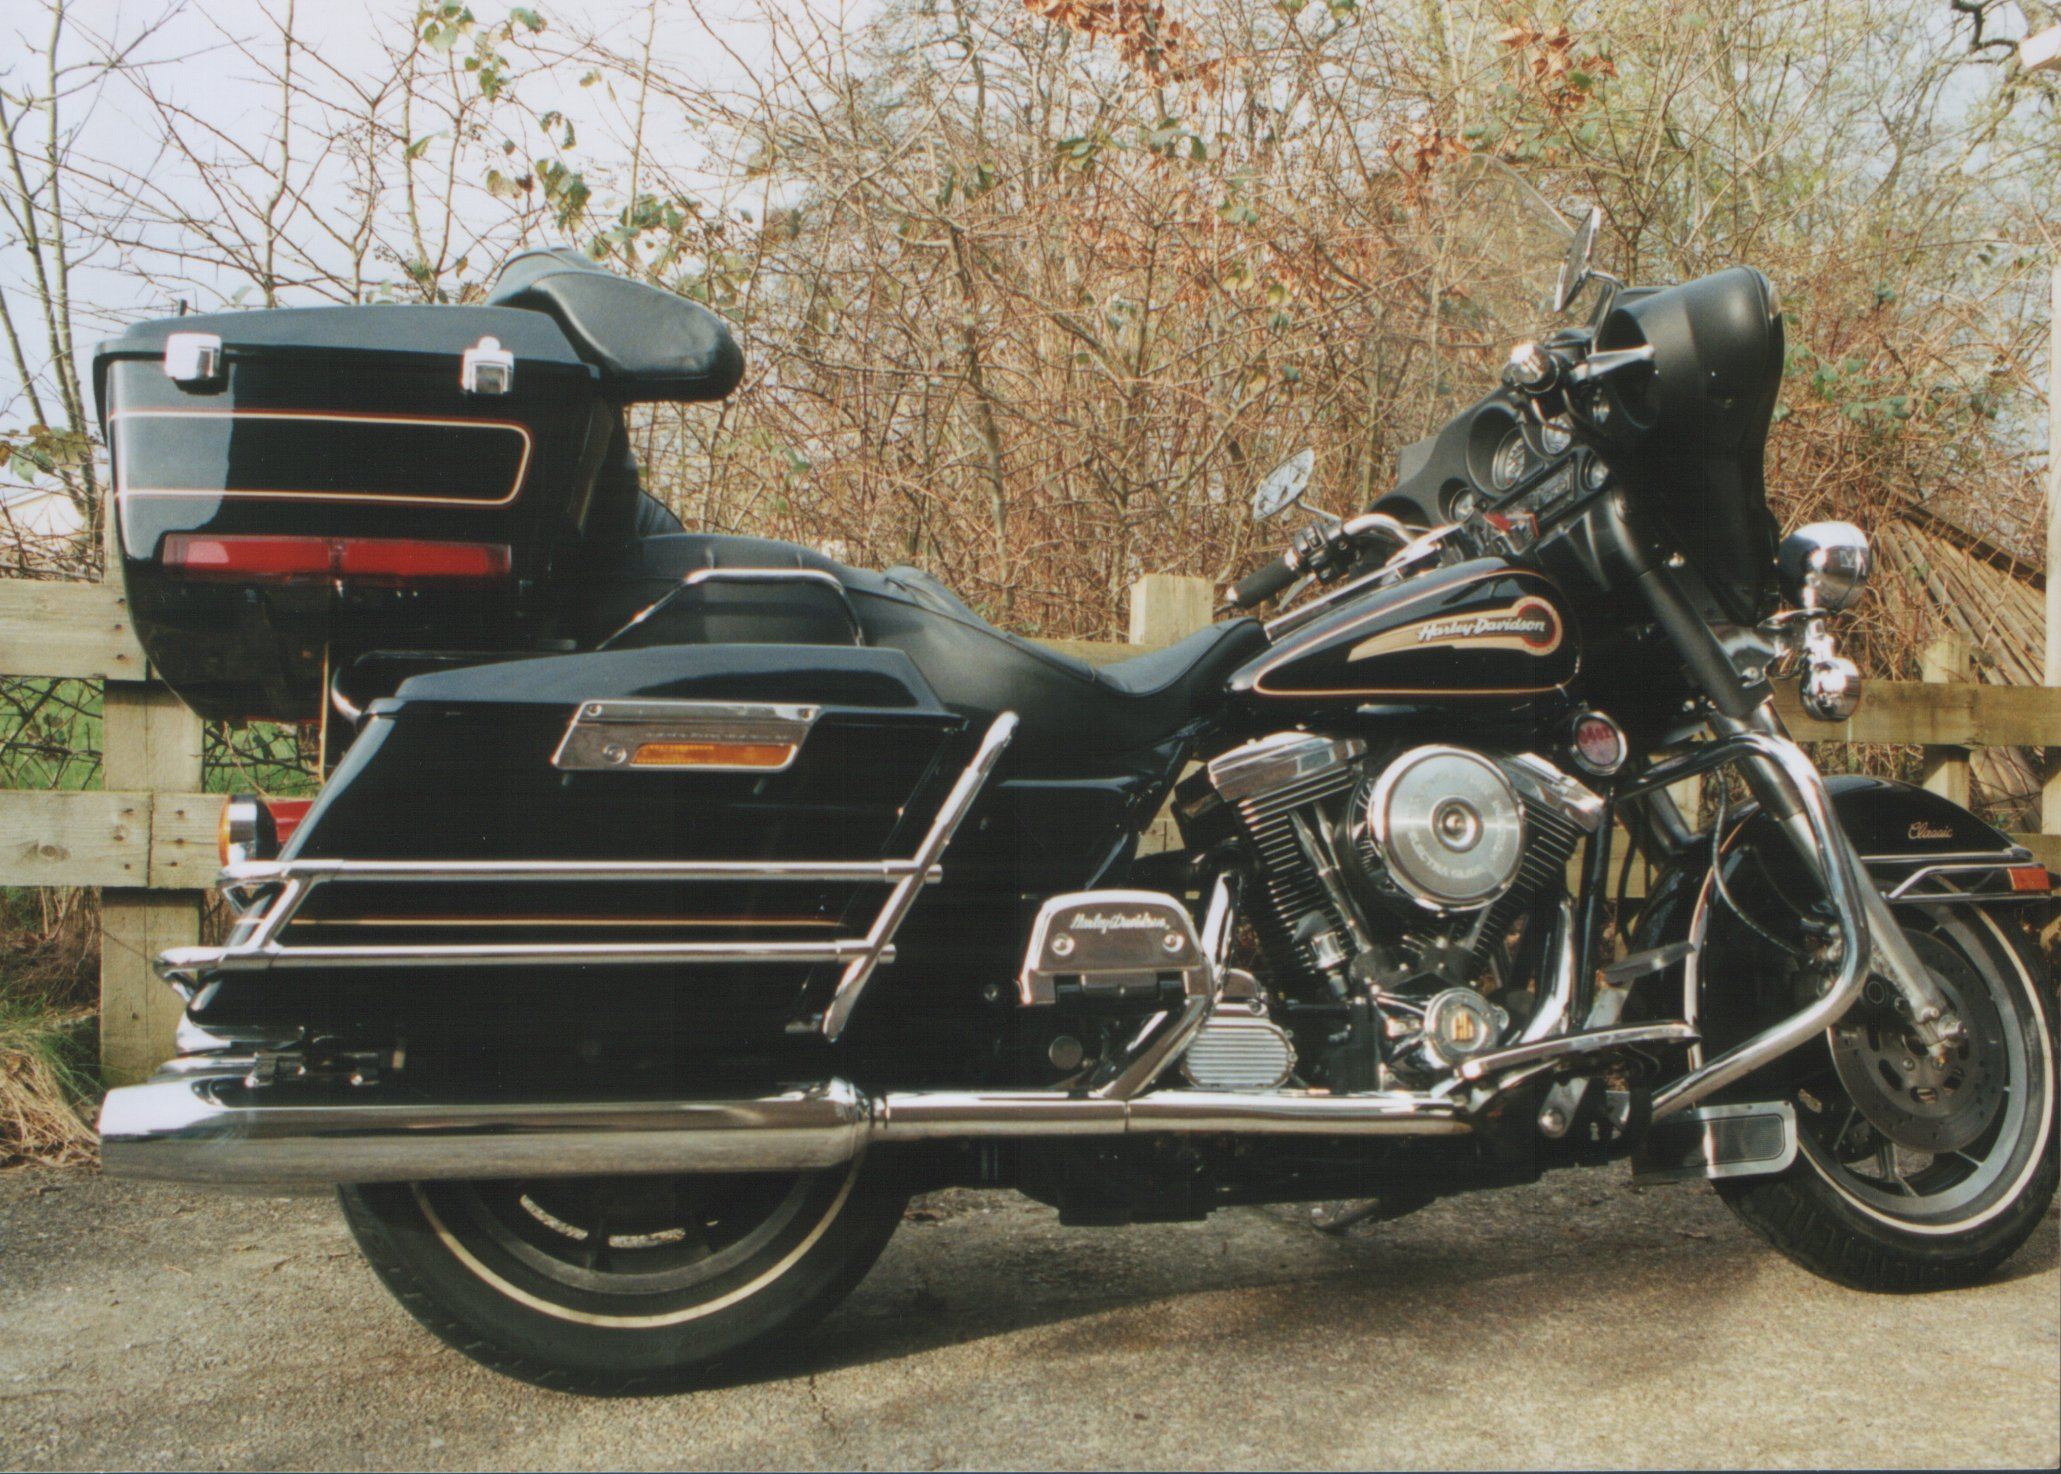 Harley-Davidson FLHTC 1340 Electra Glide Classic 1992 pics #148359